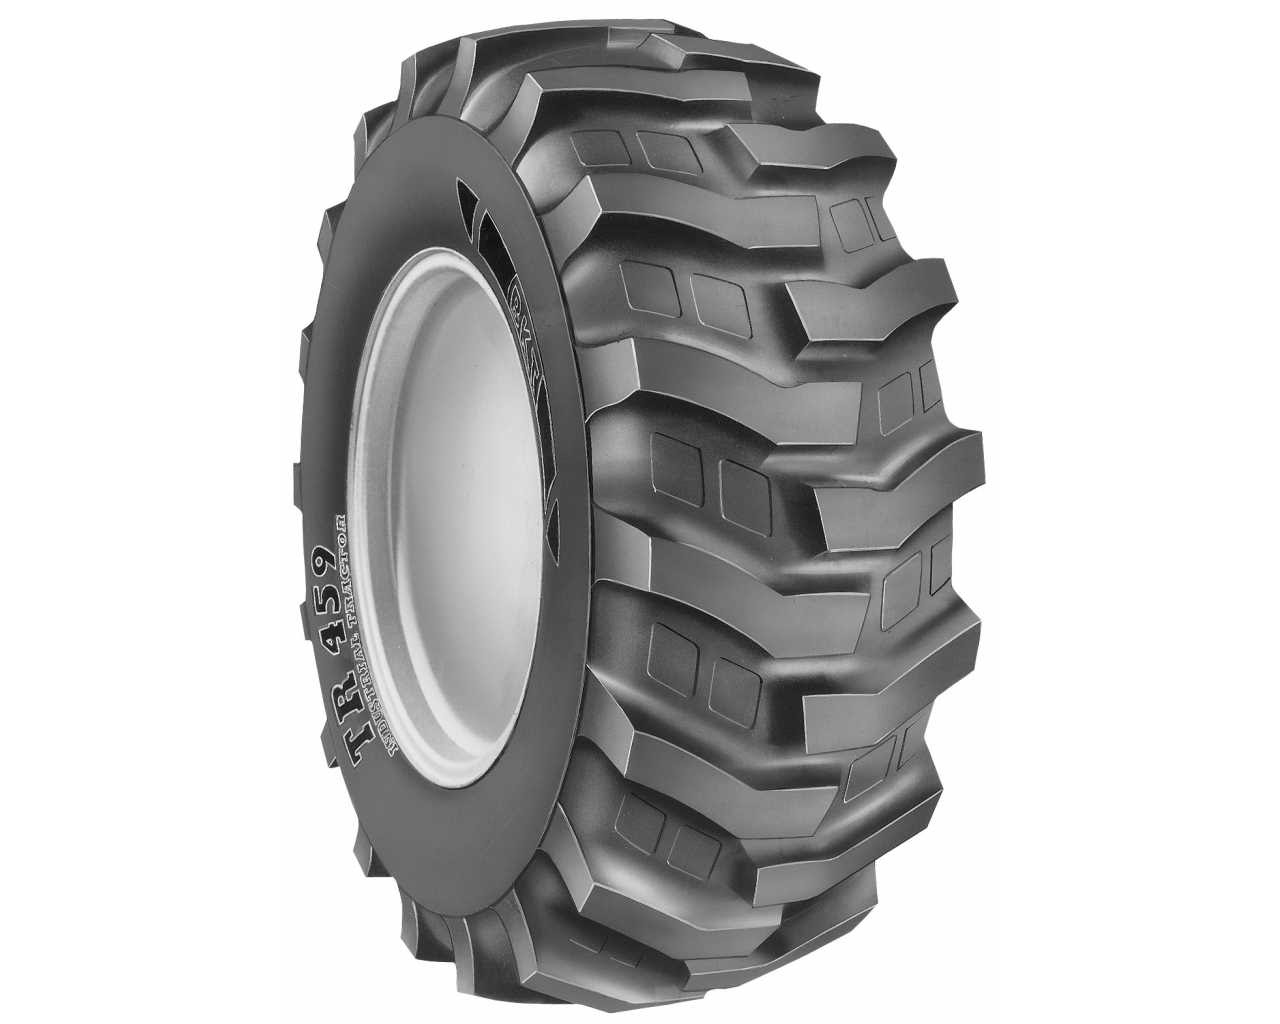 16 9x28 Bkt Tr 459 12pr Tl Buy Online At Agrigear Irelands Tyre And Wheel Specialists